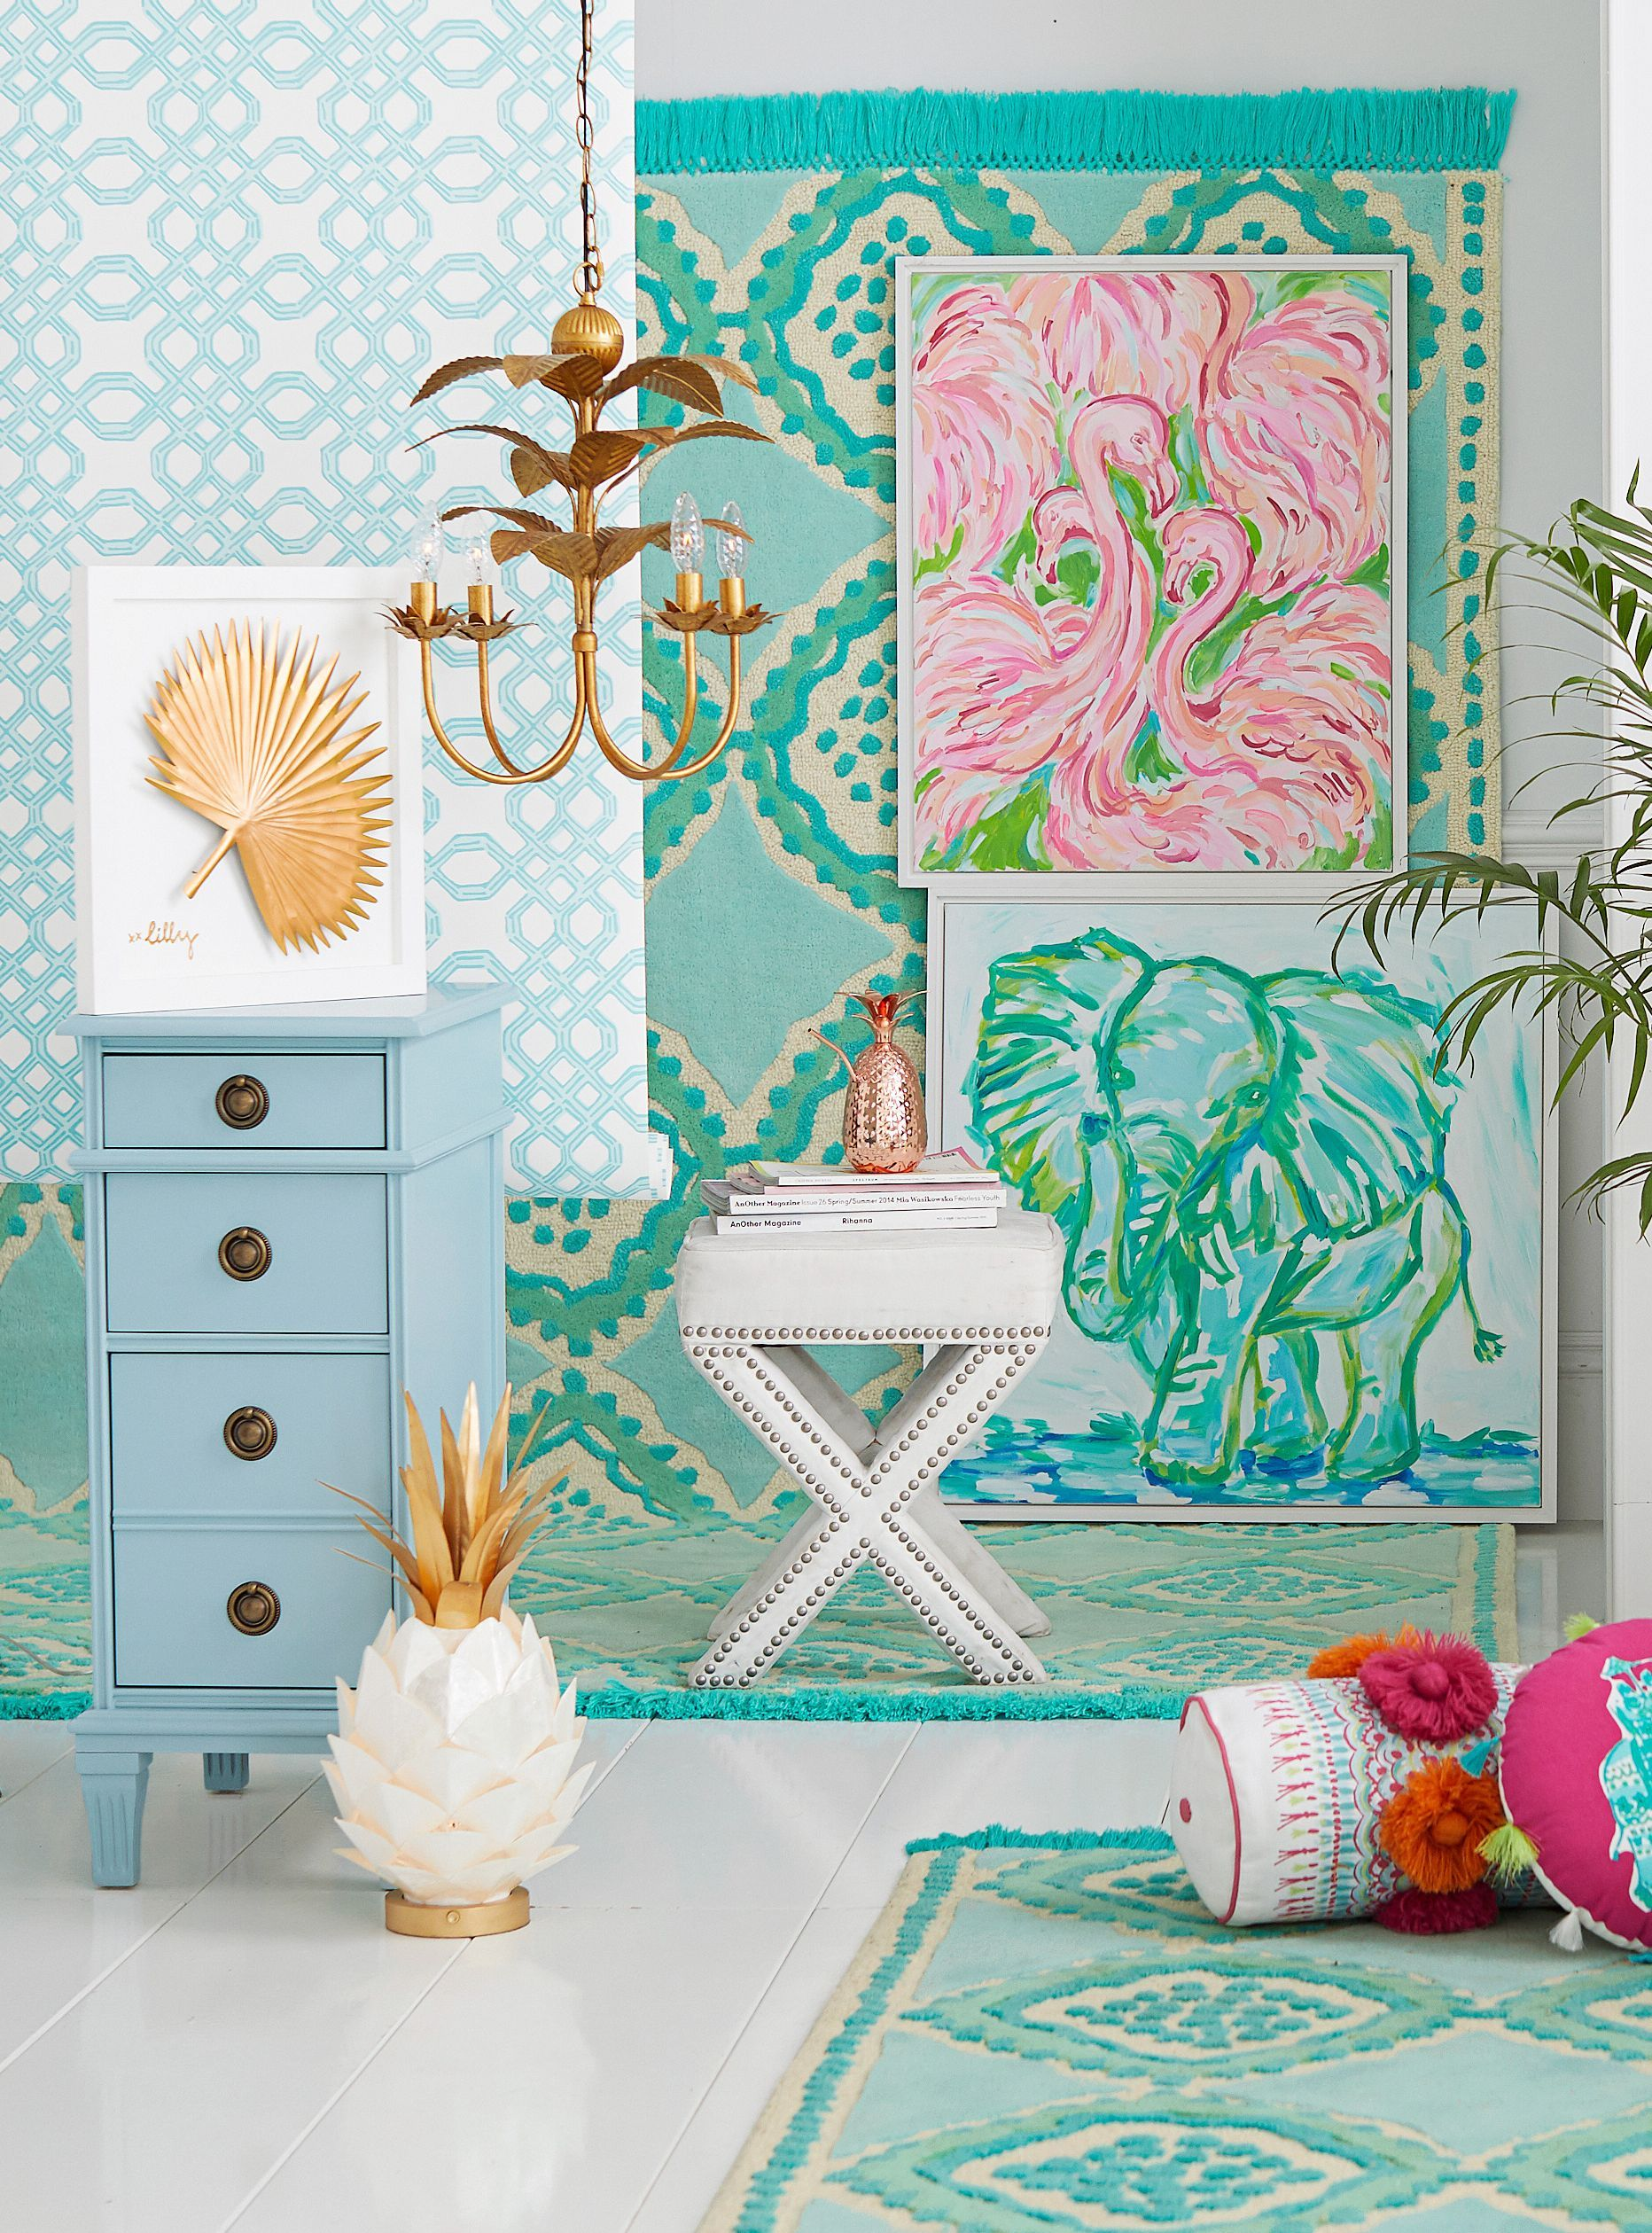 10 Best Colorful Home Decor images in 10  Decor, Home decor, Home